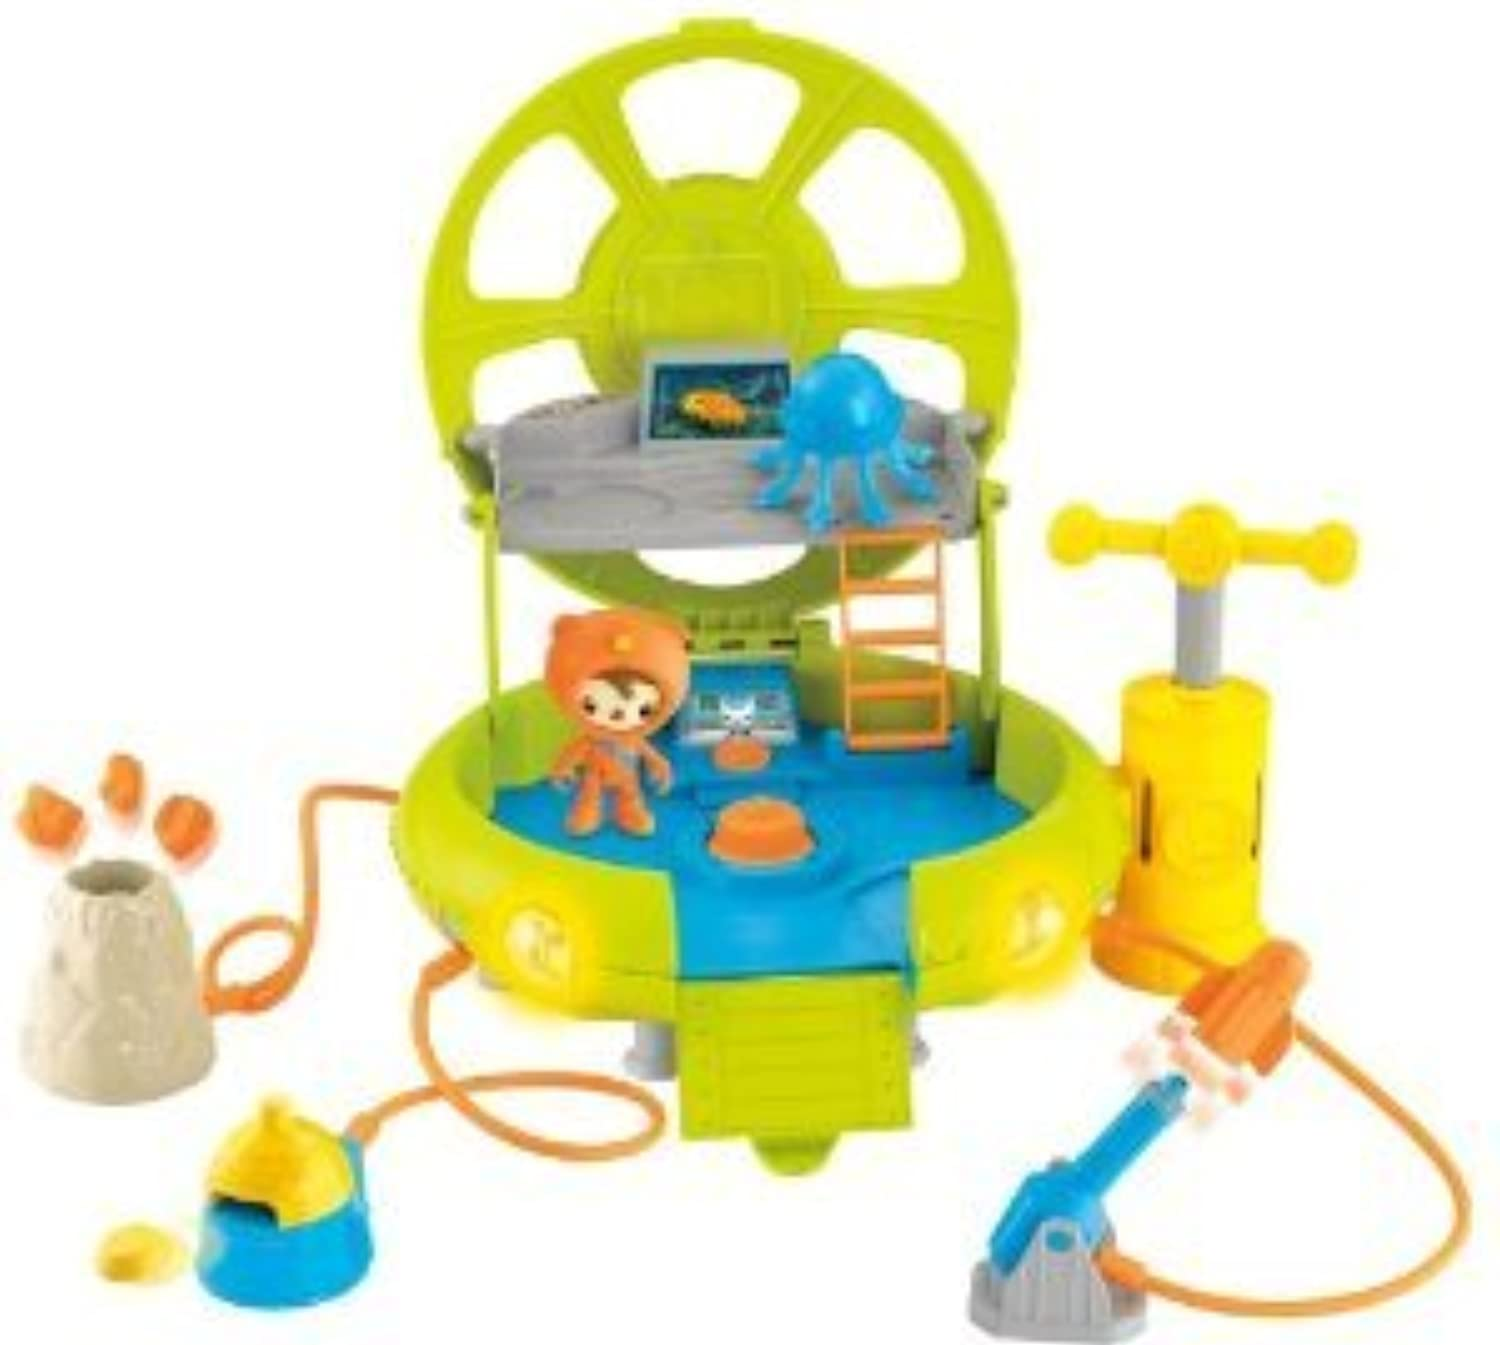 Octonauts Deep Sea Octo-Lab Playset(並行輸入)